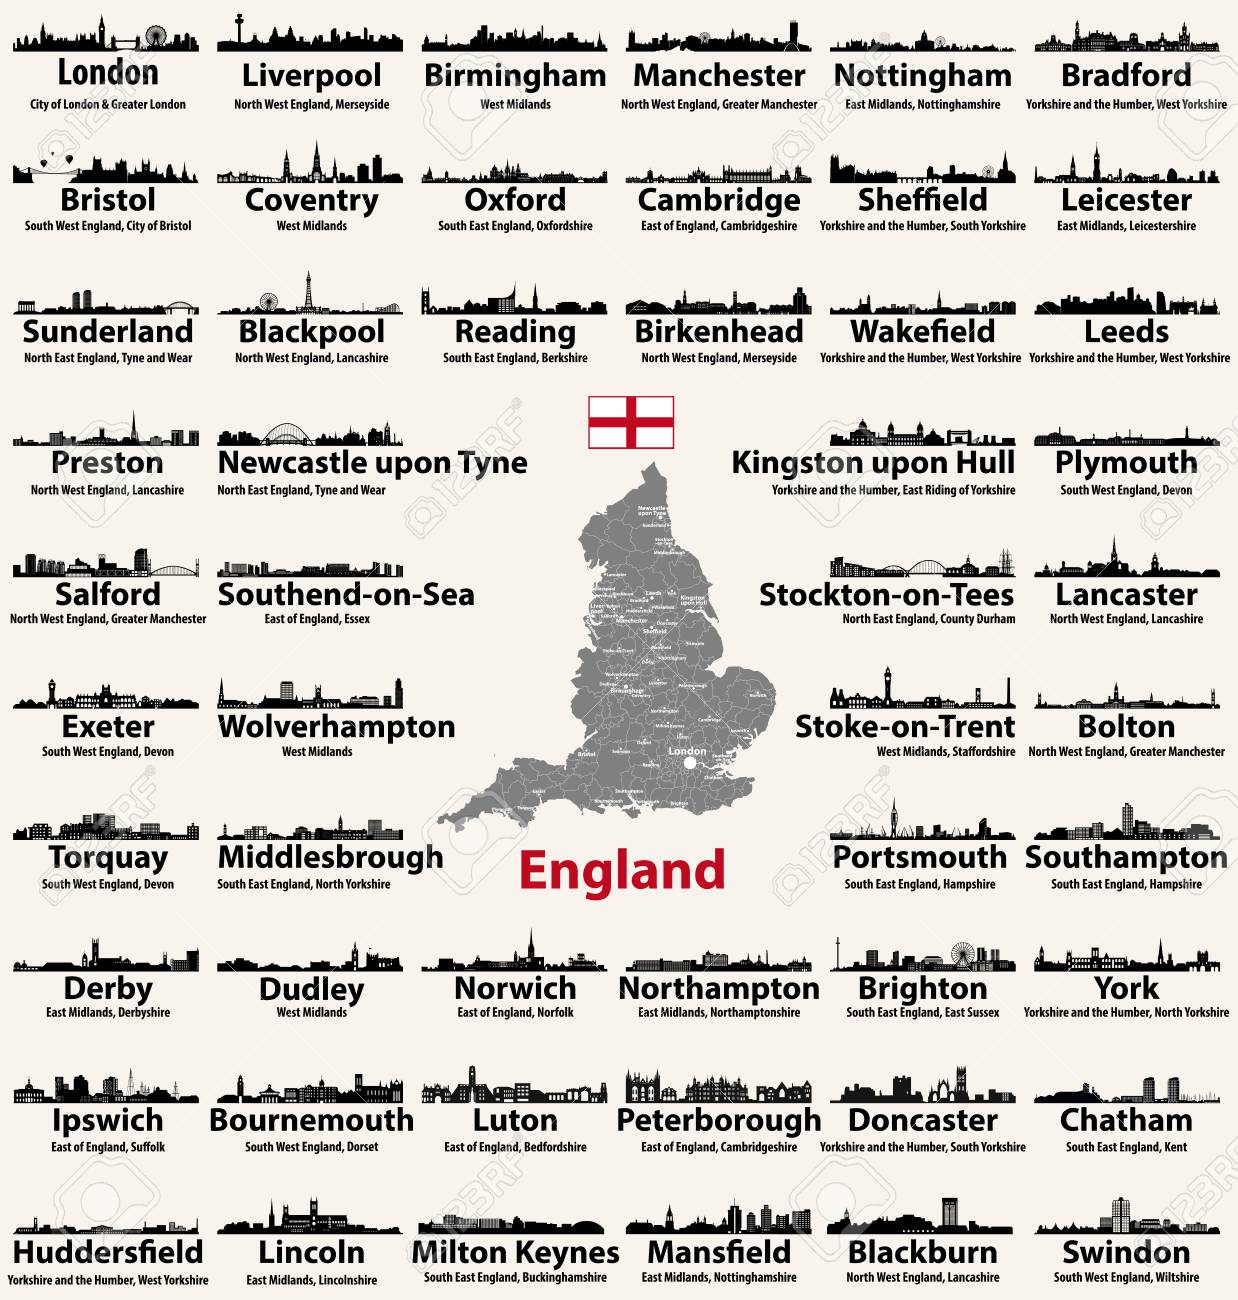 Map Of England Showing Major Cities.England Major Cities Abstract Skylines Silhouettes Icons Map